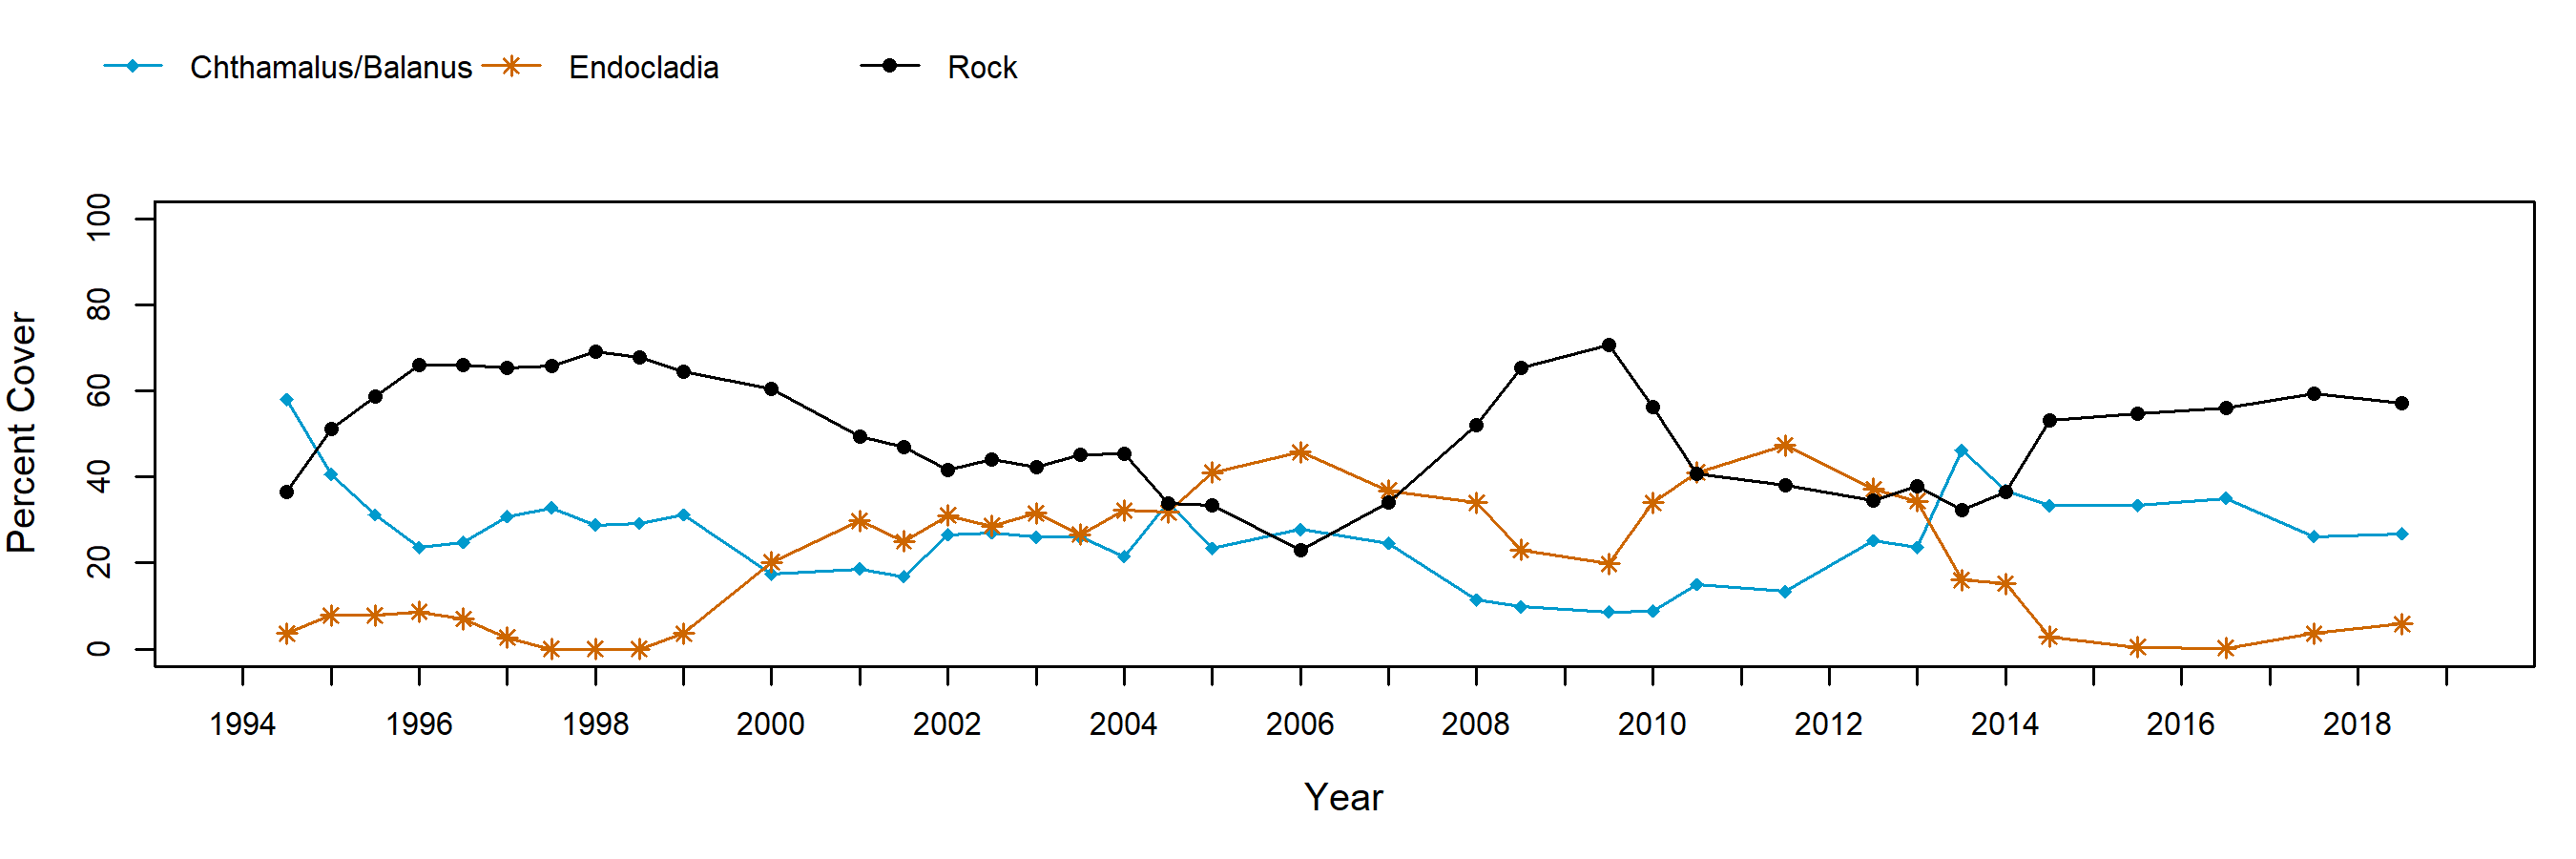 Scorpion Rock barnacle trend plot